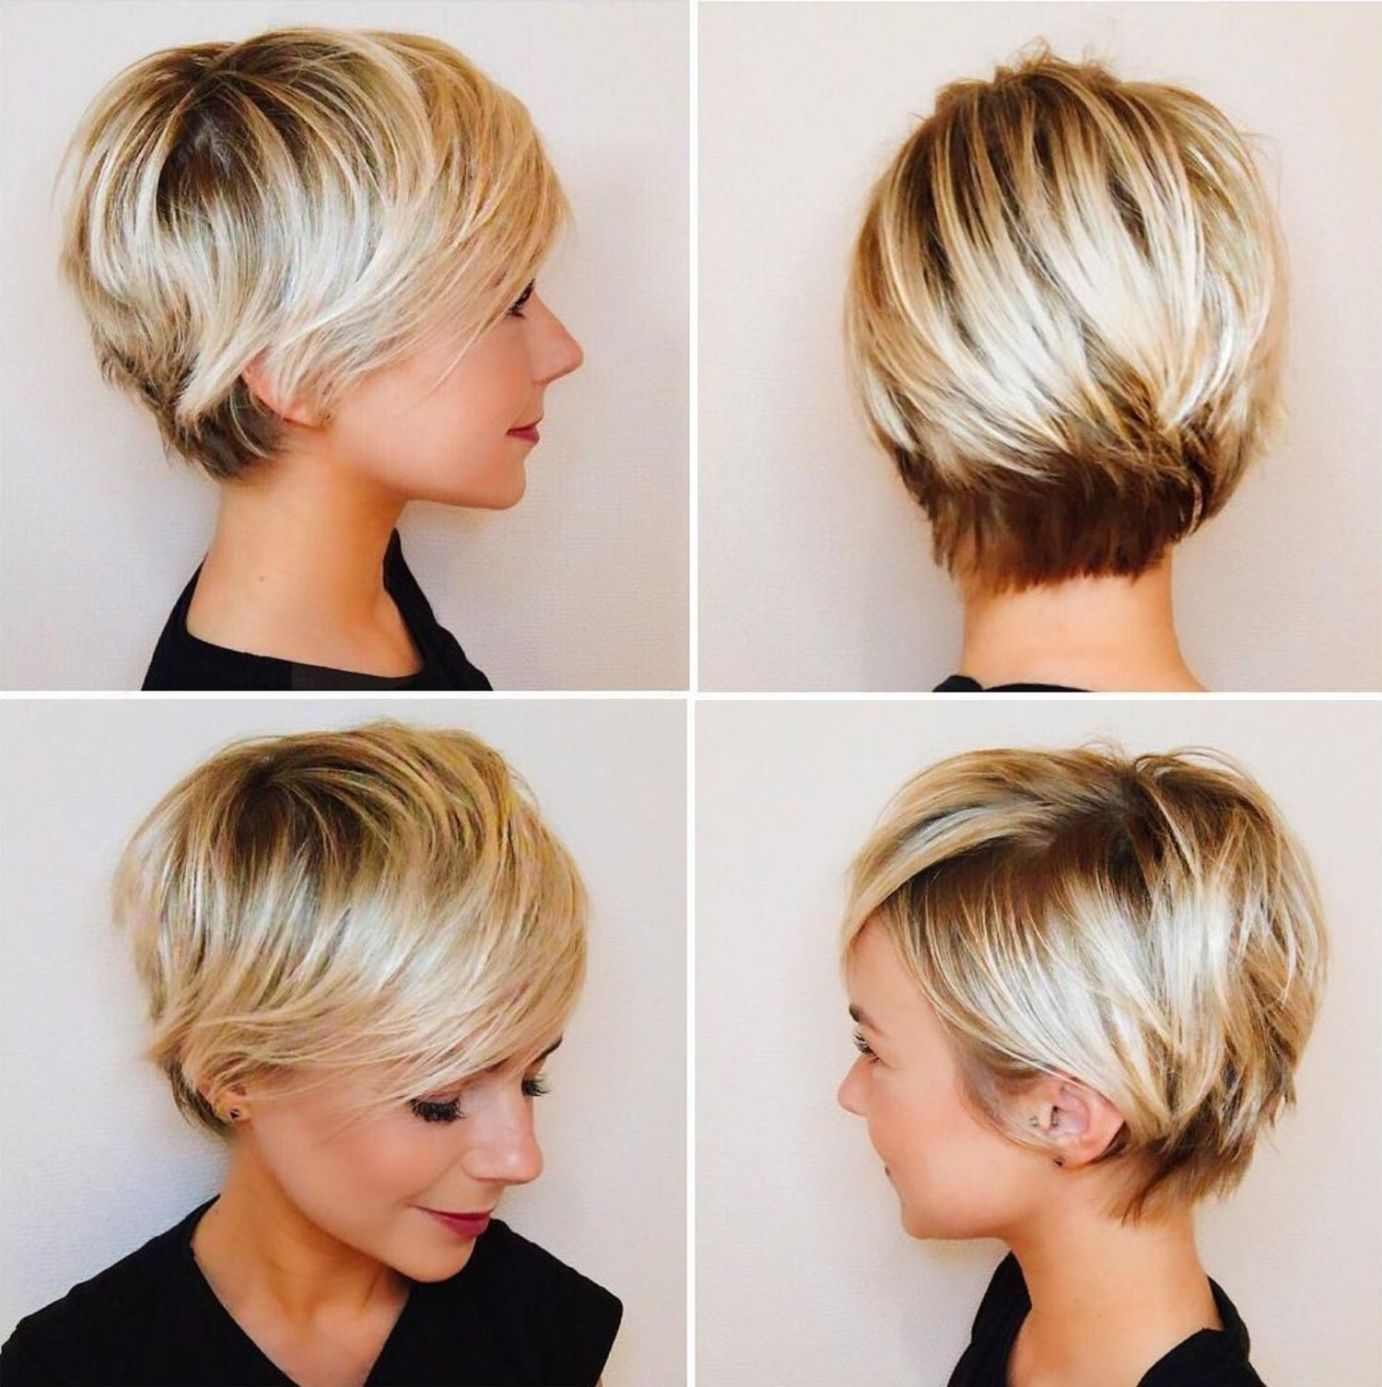 35 Stunning And Sassy Short Hairstyles For Fine Hair That Are Too Cute For  Words in 2020   Cute hairstyles for short hair, Short hair with bangs, Short  hair styles